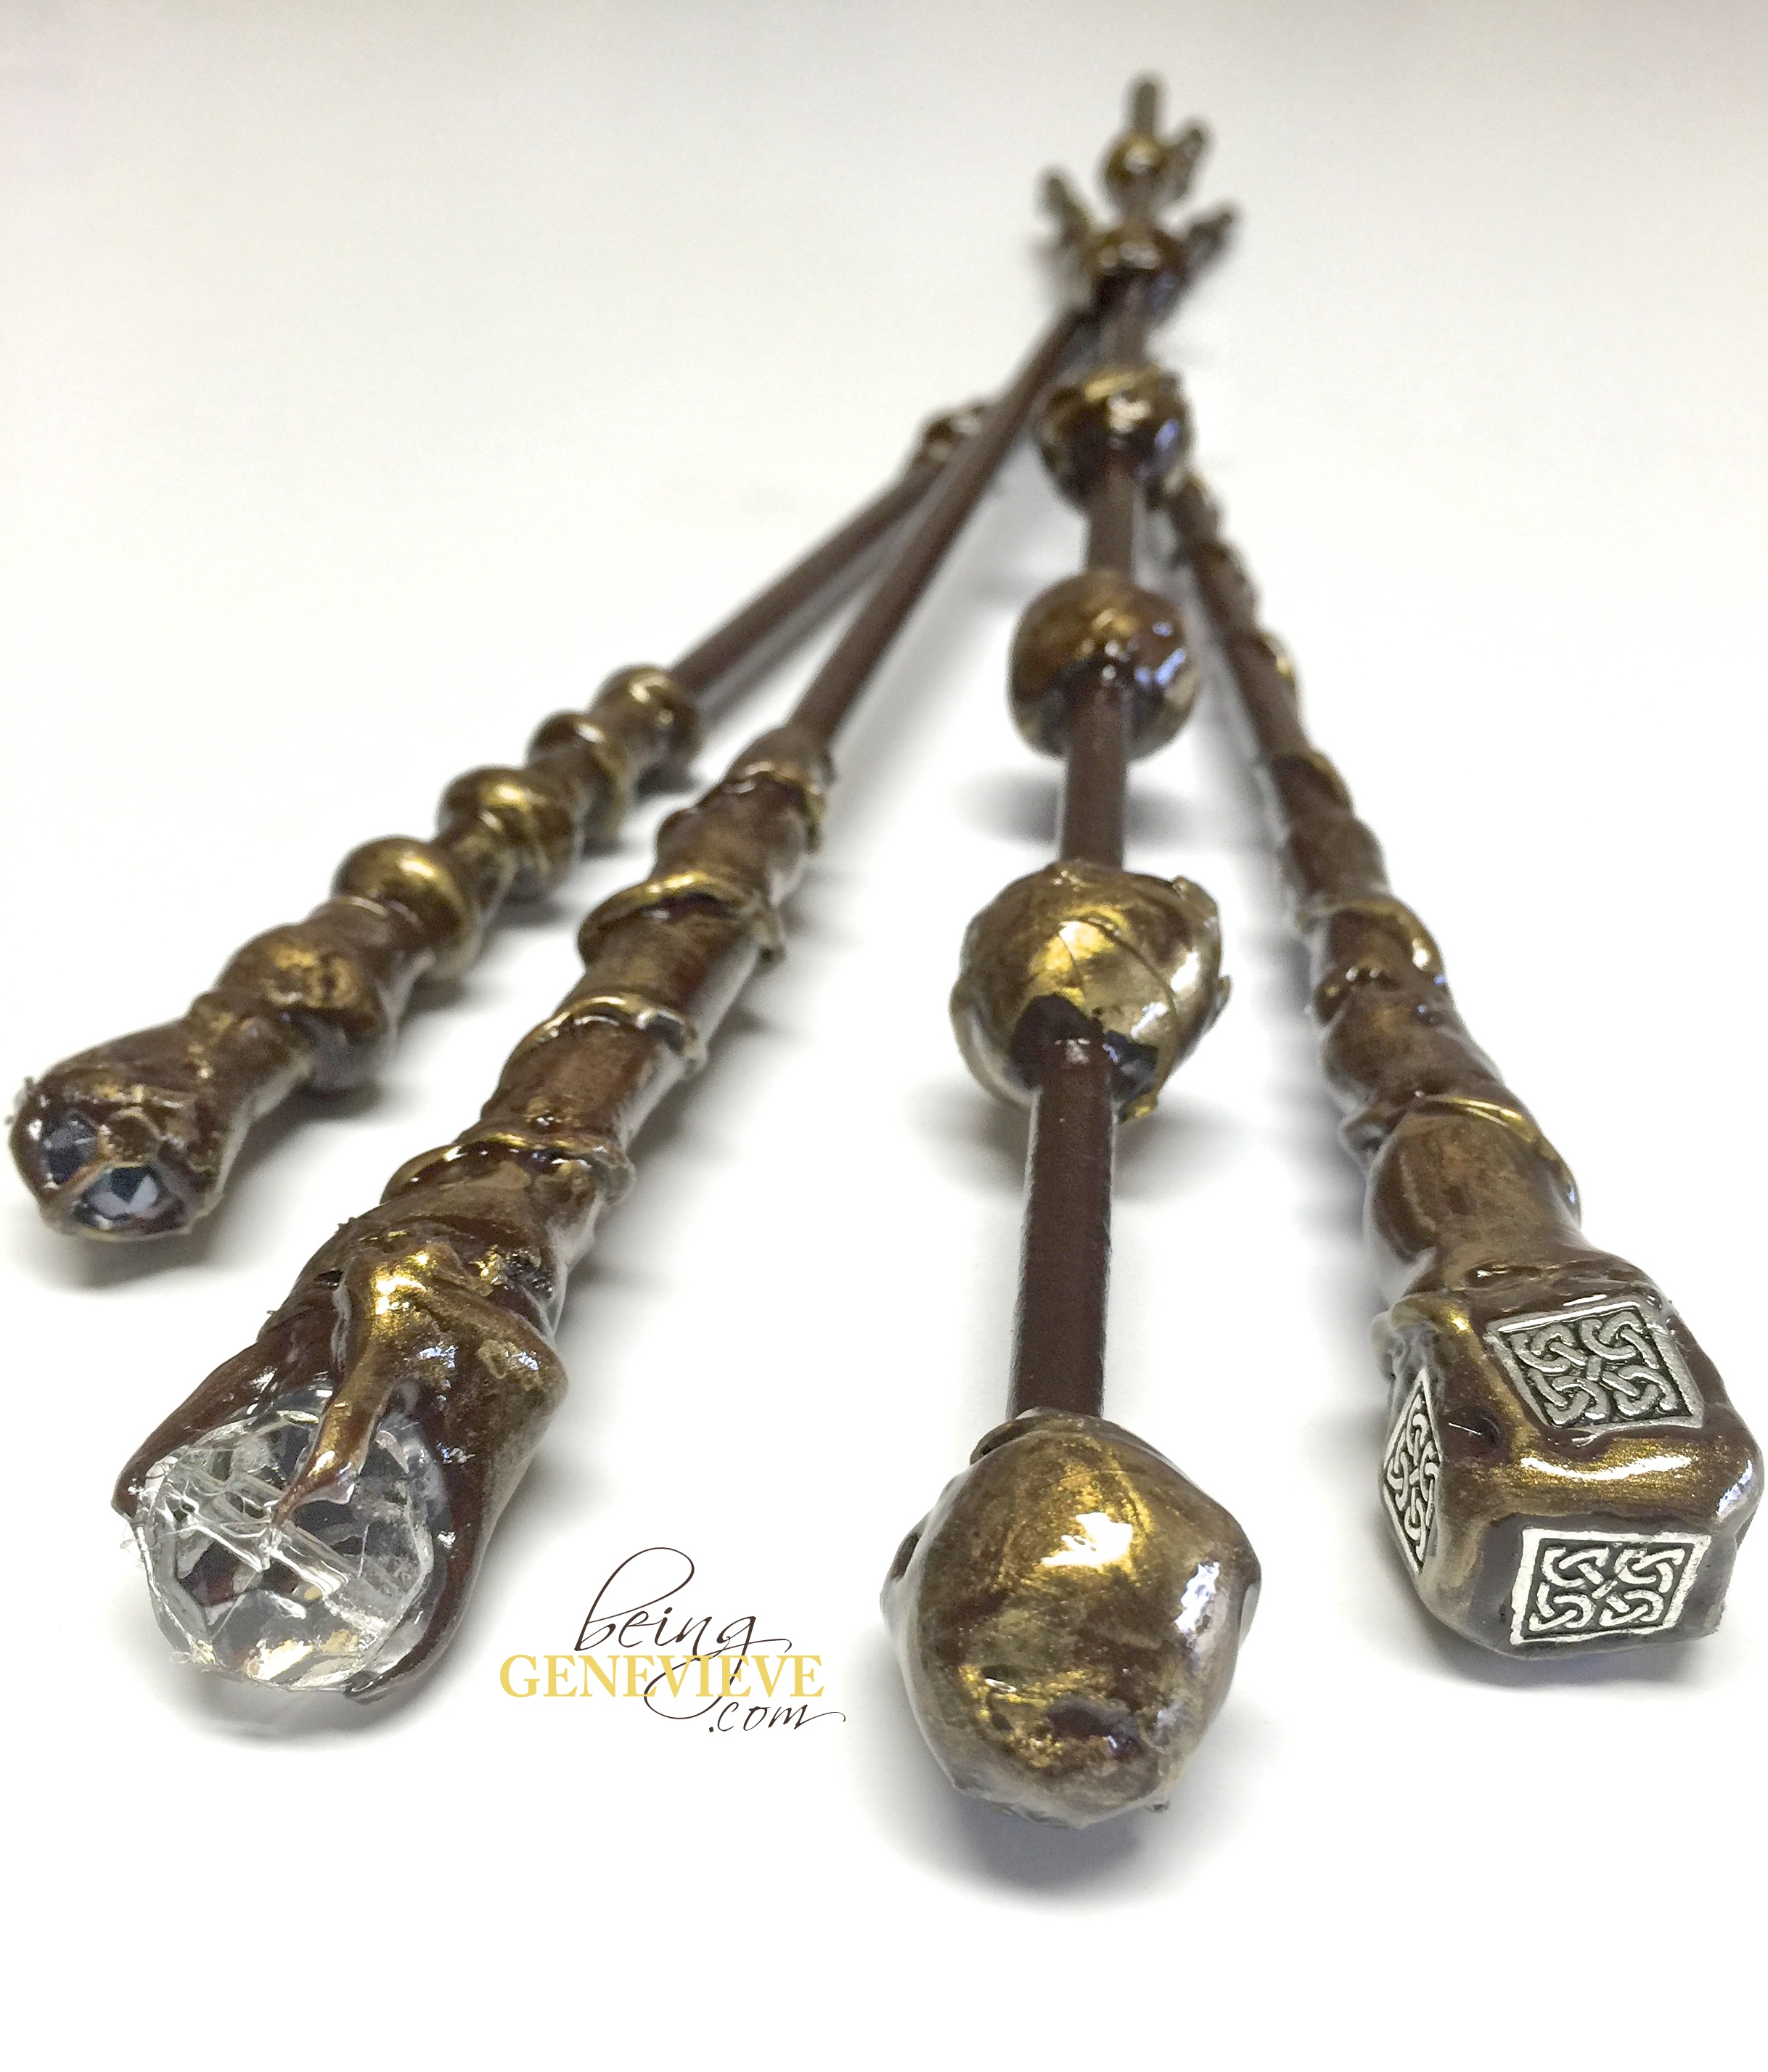 Harry potter wands being genevieve for Wand accessoires